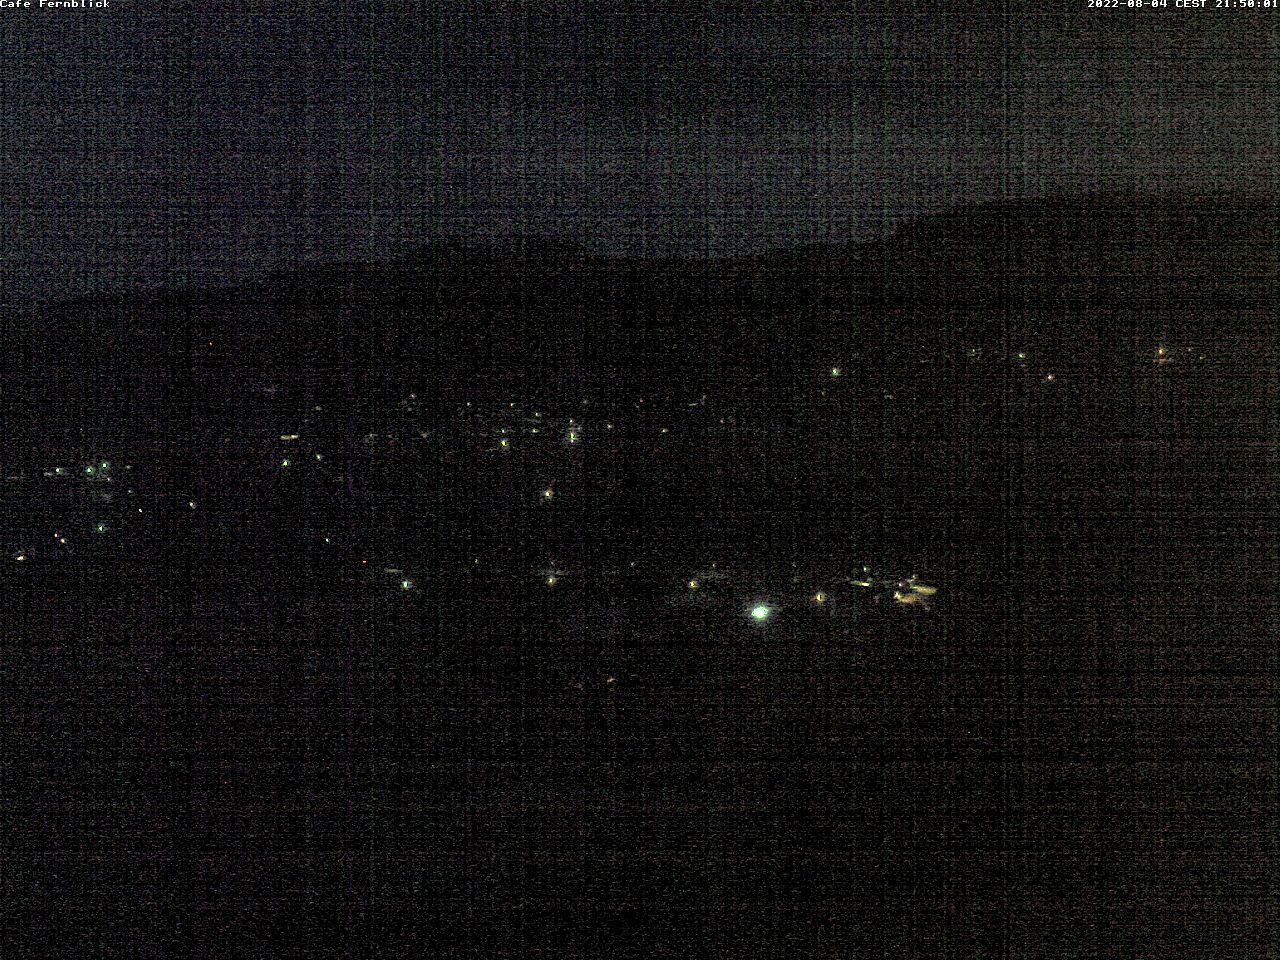 Cafe Fernblick Willingen Webcam